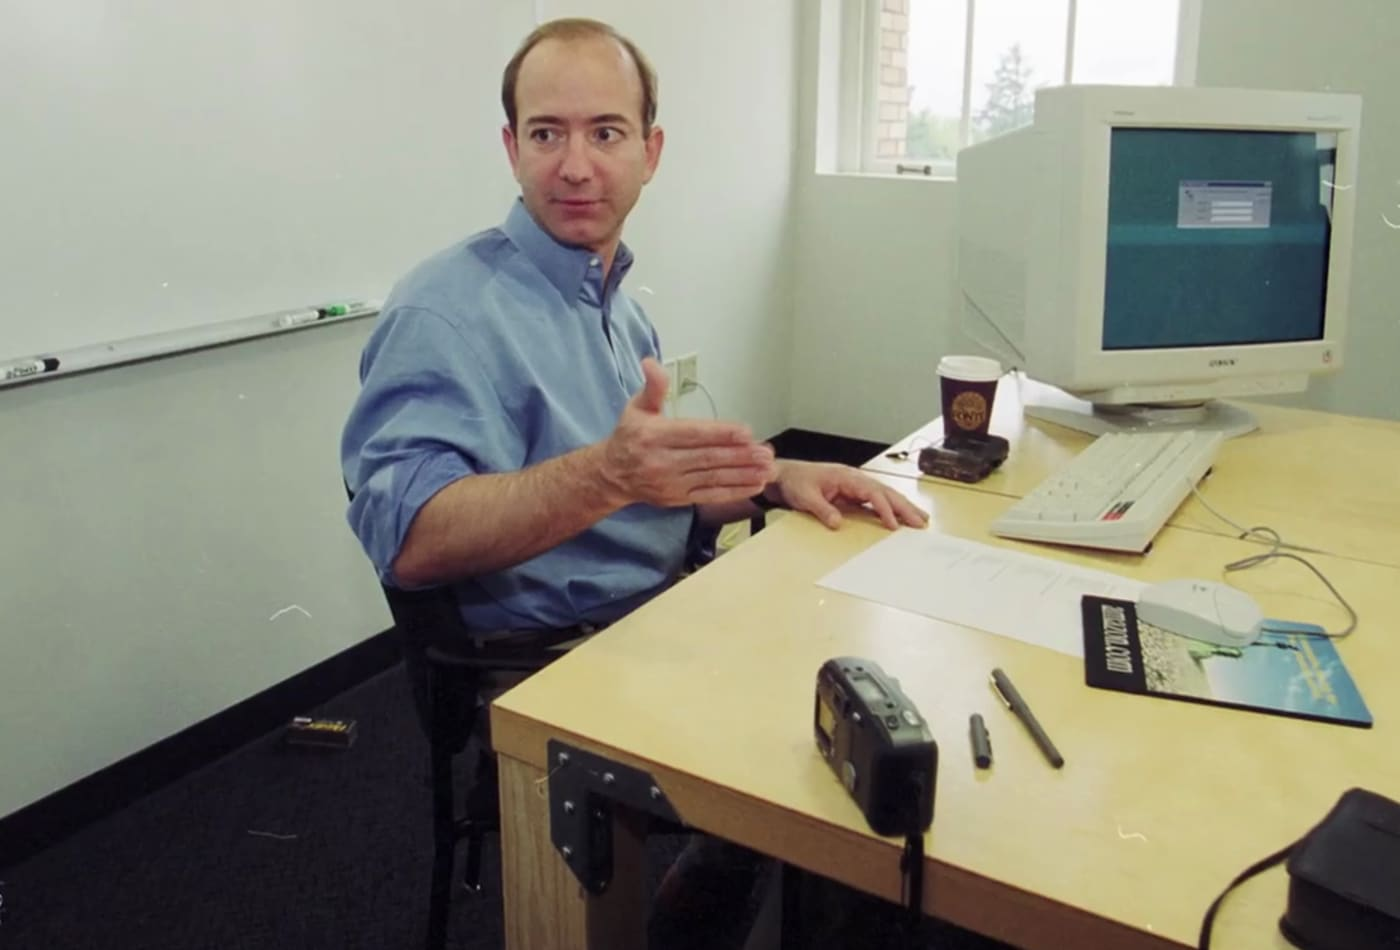 Jeff Bezos First Desk At Amazon Was Made Of A Wooden Door